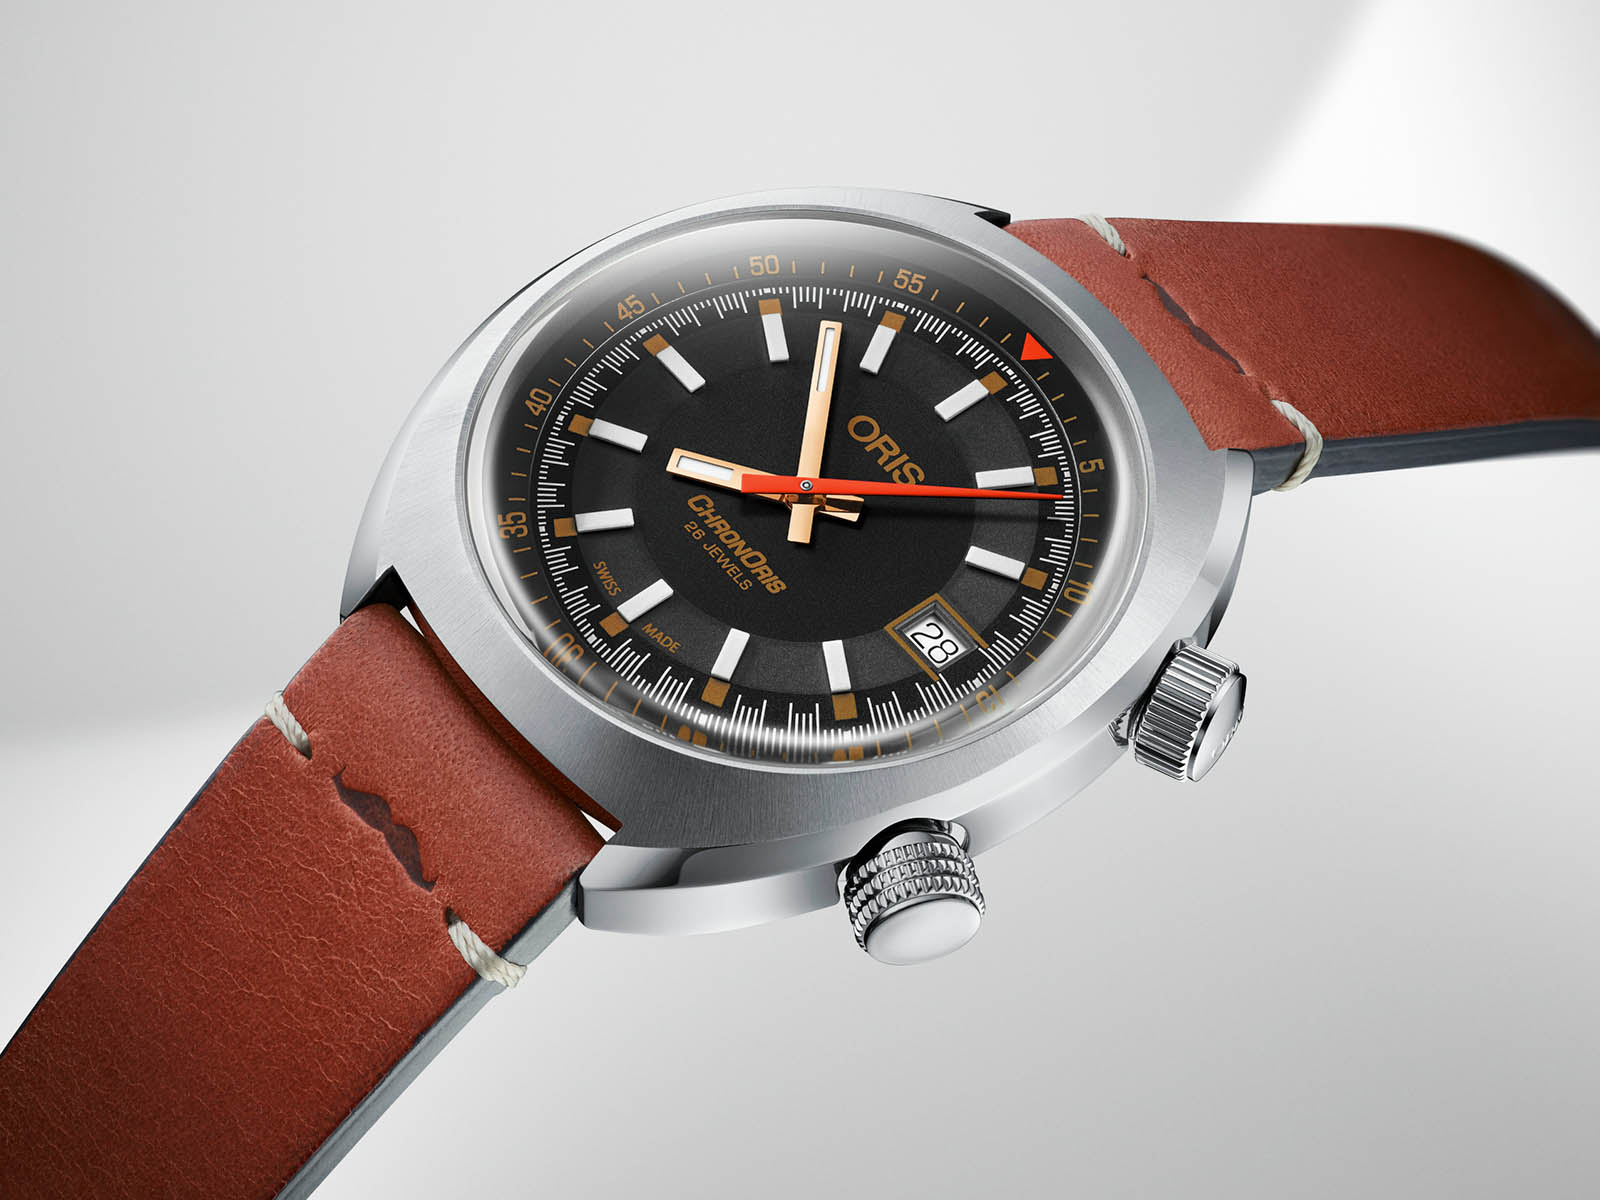 01-733-7737-4034-set-ls-oris-chronoris-movember-edition-1.jpg